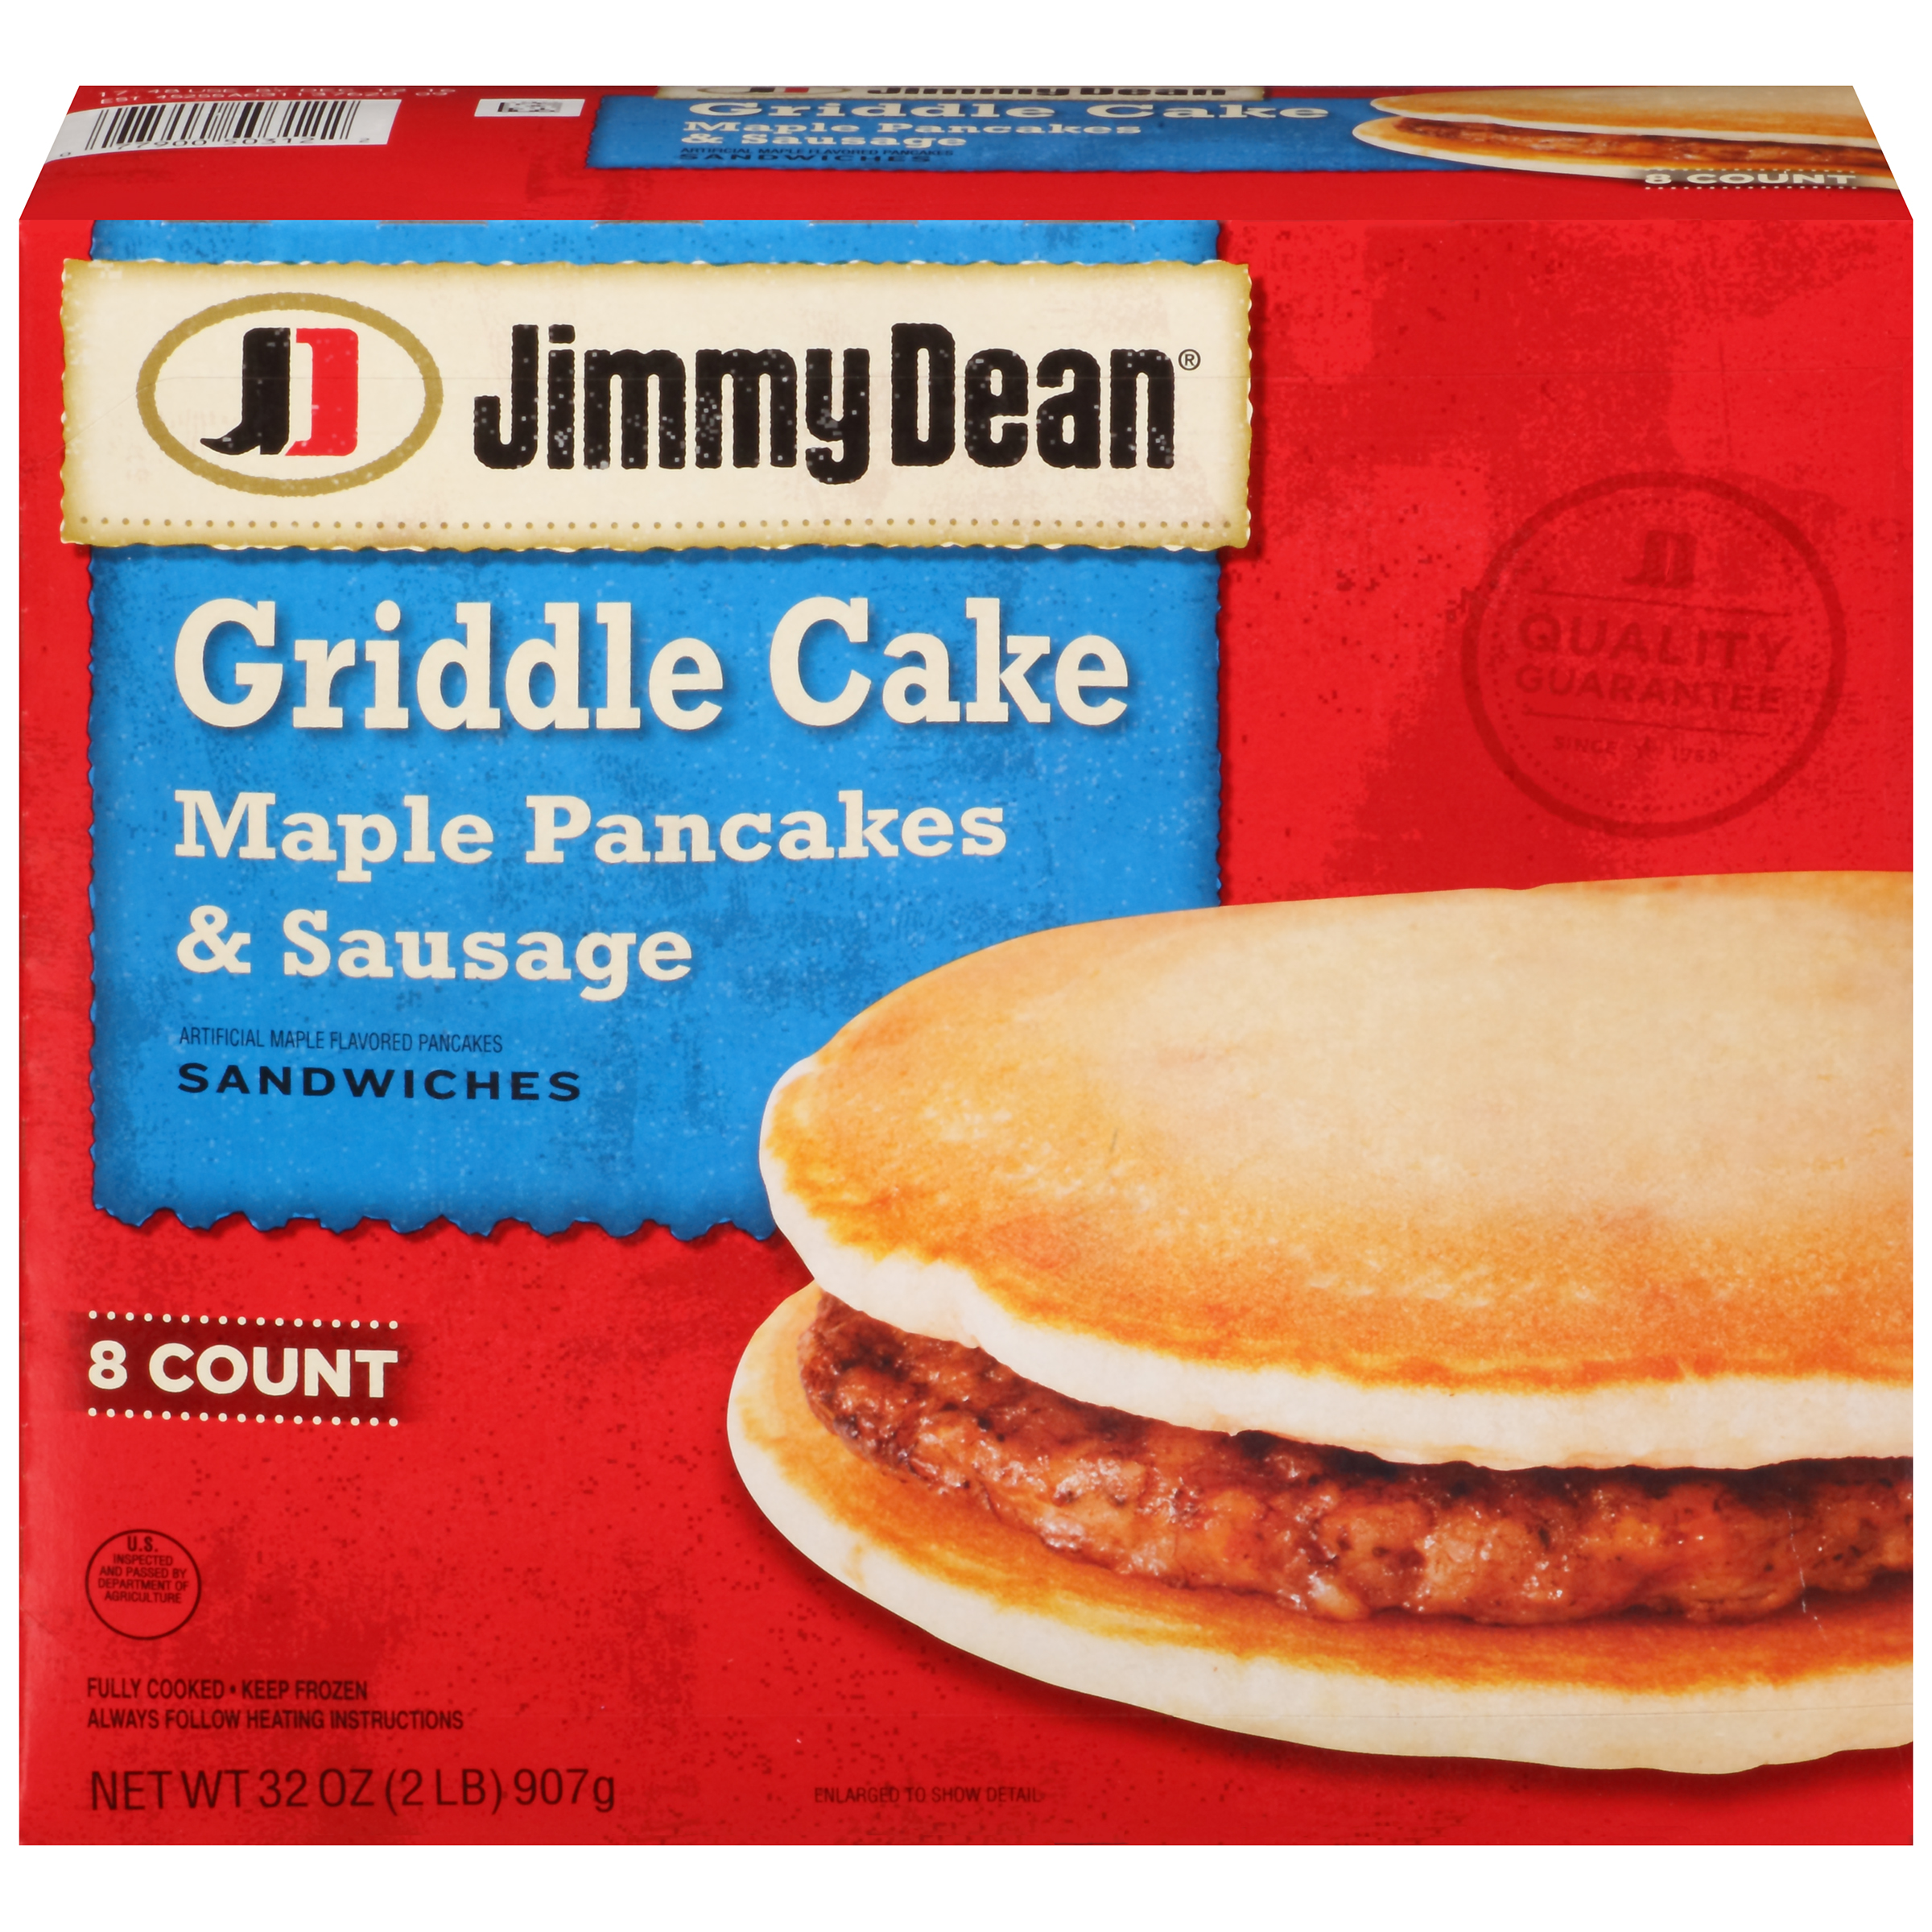 Jimmy Dean Griddle Cake Maple Pancakes Sausage Sandwiches 8 count